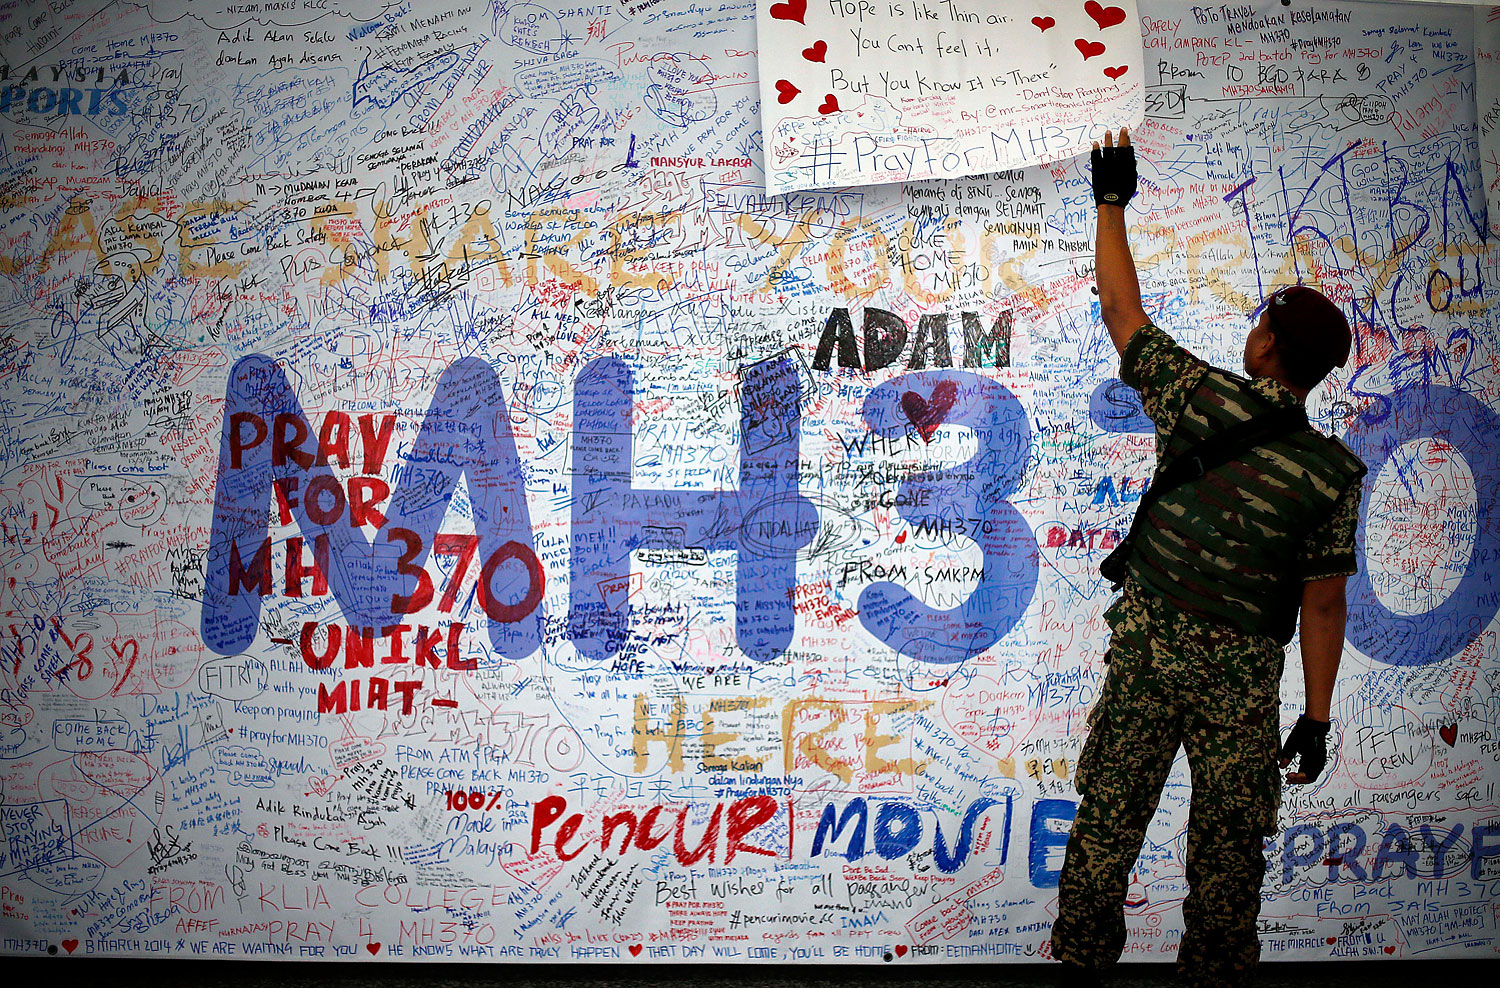 A Malaysian soldier patrols the viewing gallery of the Kuala Lumpur International Airport, where dedication boards with for people involved with the missing Malaysia Airlines jetliner is displayed, in Sepang, Malaysia, on March 16, 2014